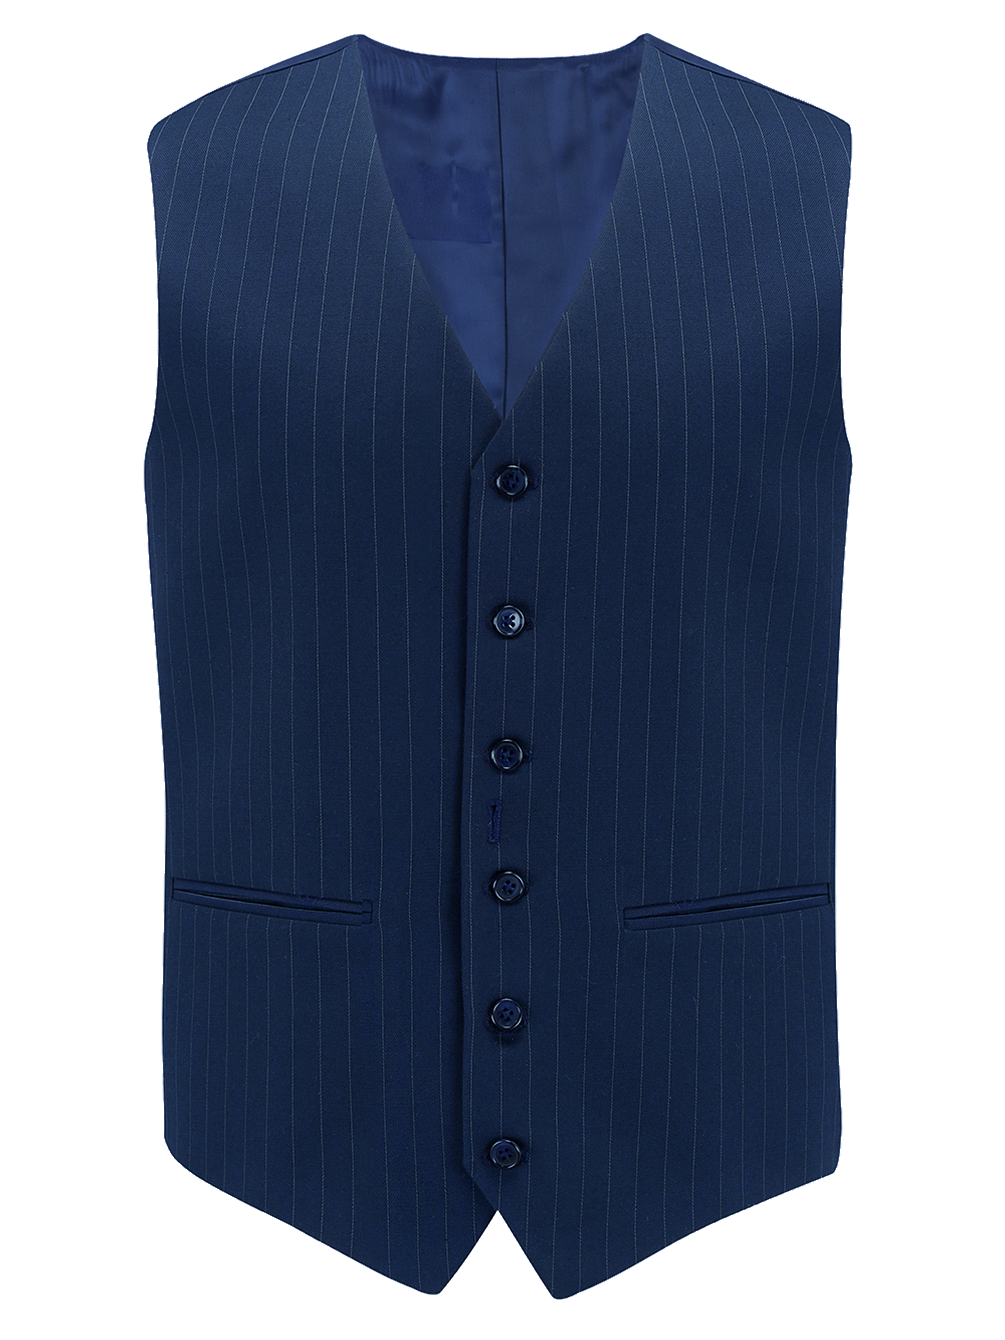 The Seamstress of Bloomsbury Mens Waistcoat in Navy Pinstripe, 1940's Vintage Style by The Seamstress of Bloomsbury - RocknRomance Clothing